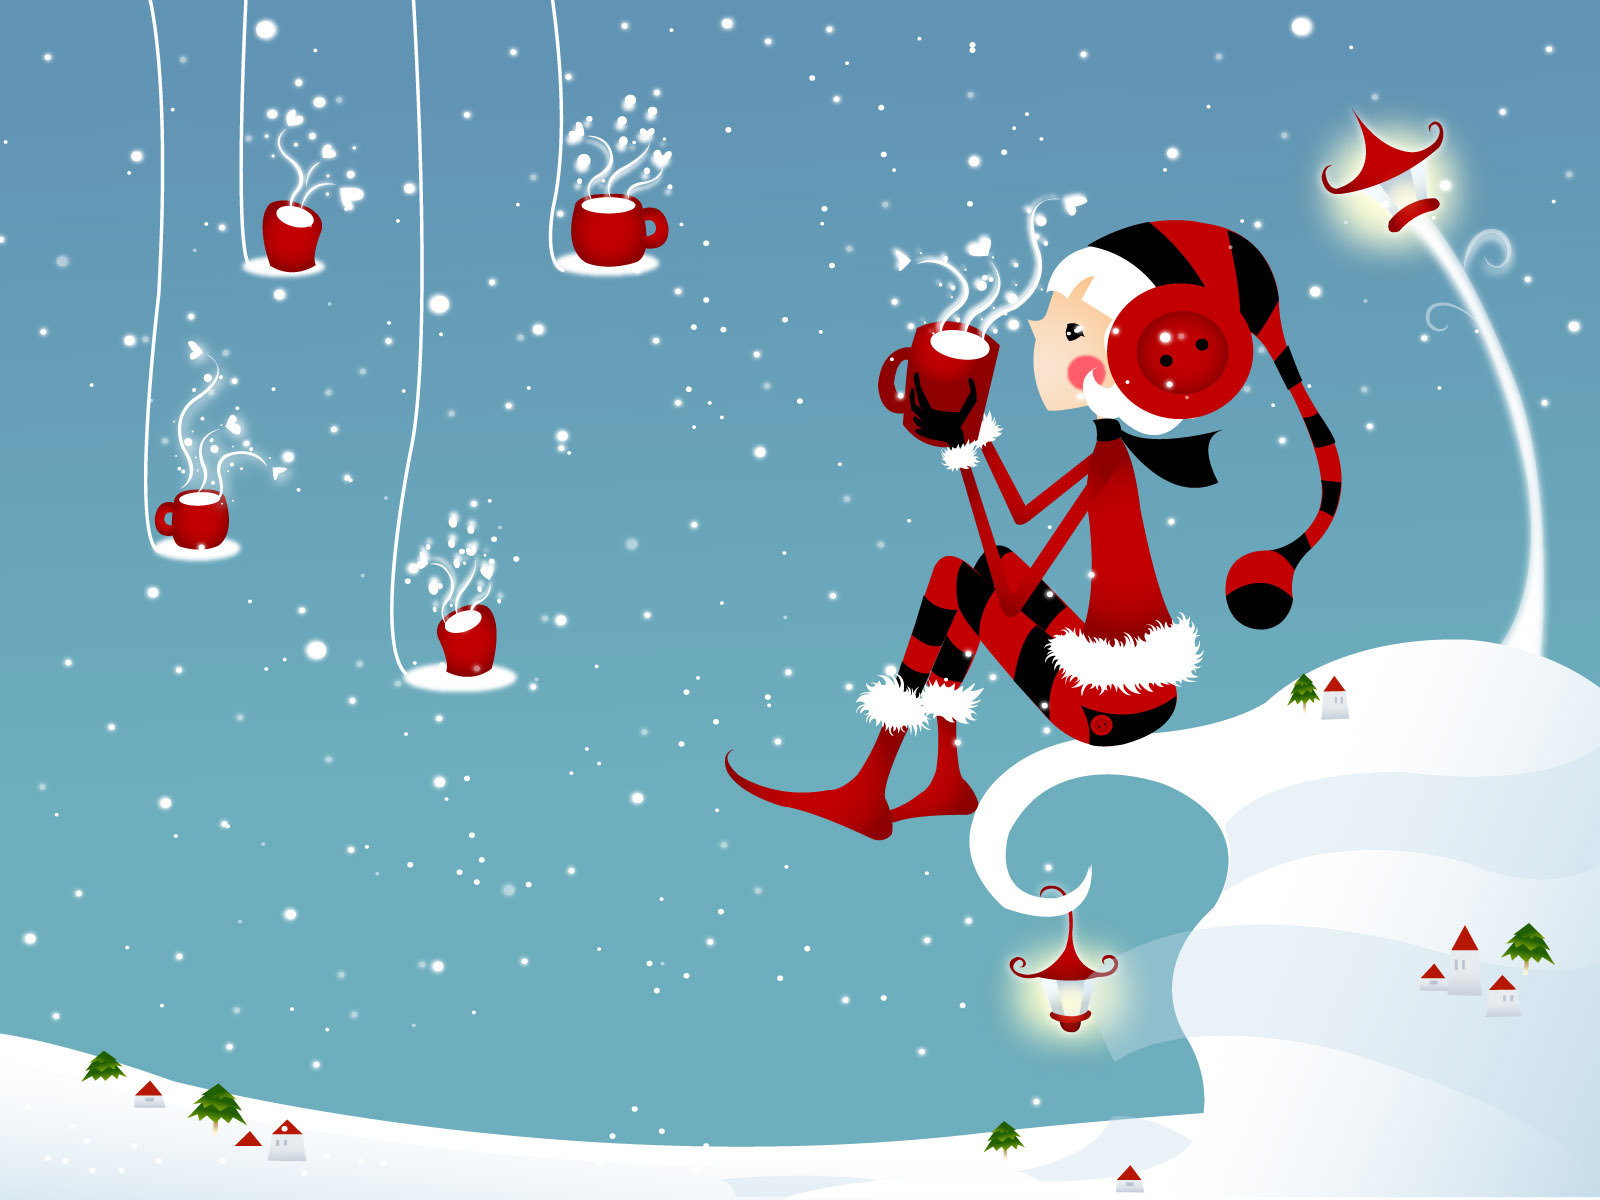 Girl with a cup of tea on Christmas wallpapers and images   wallpapers 1600x1200